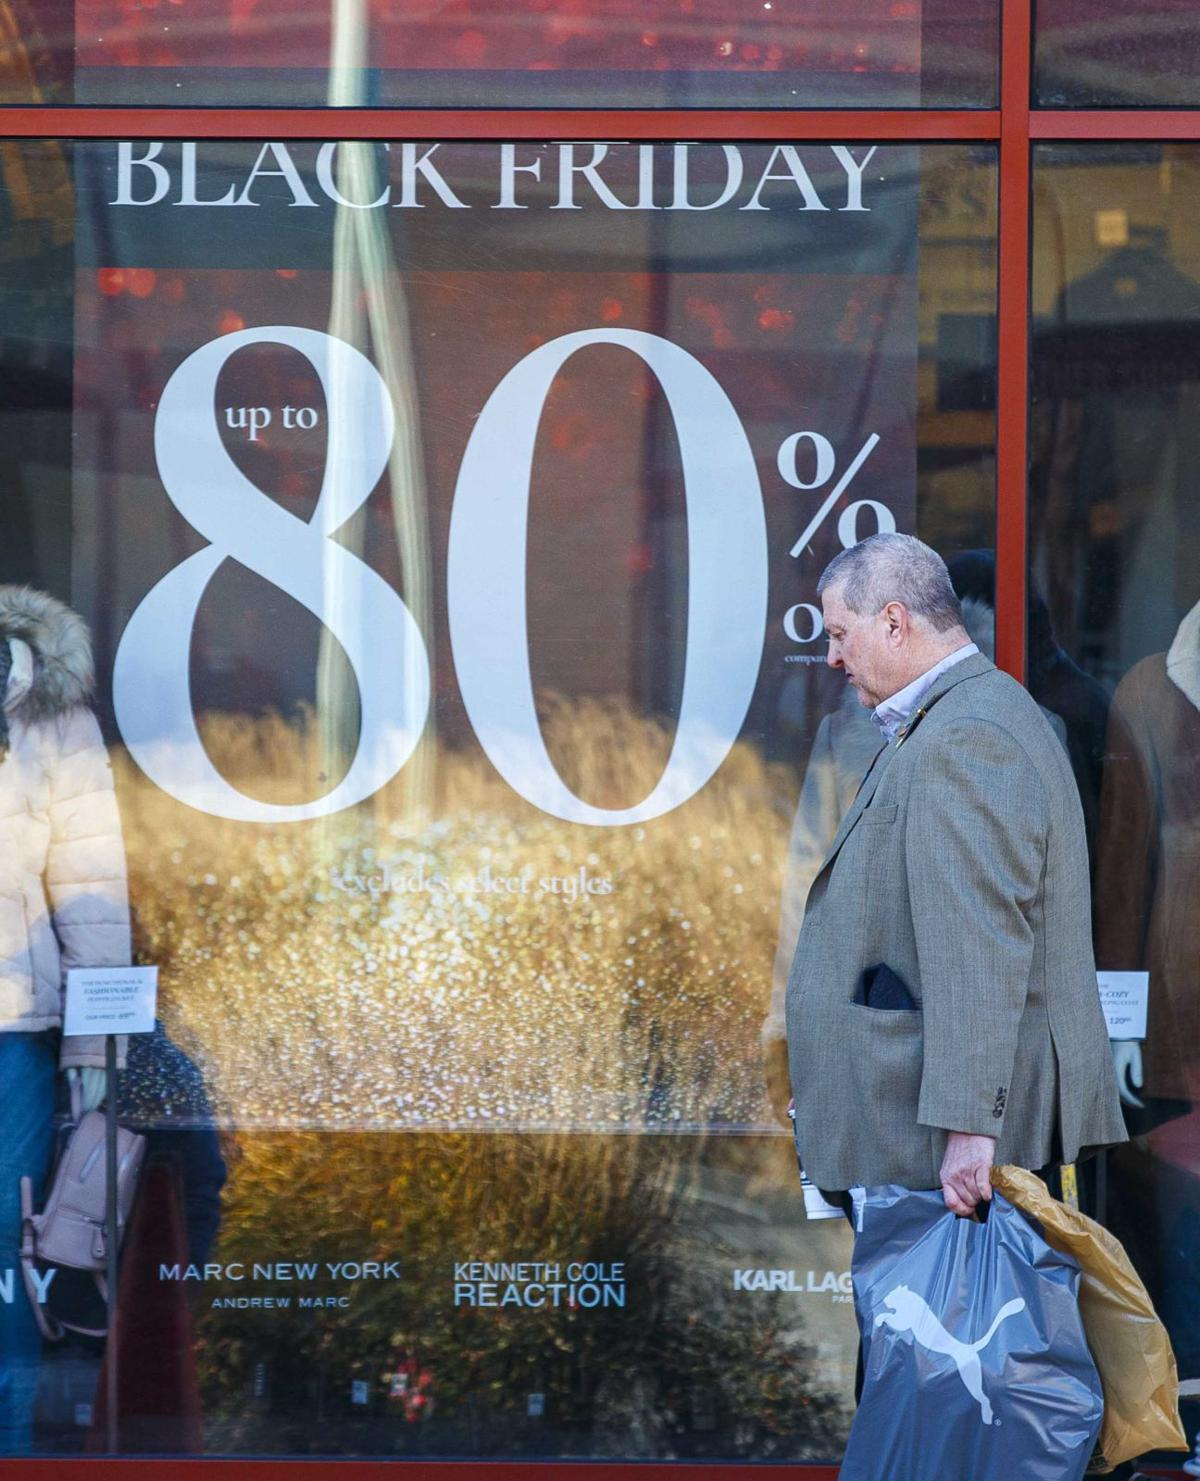 Black Friday sales at the Walk